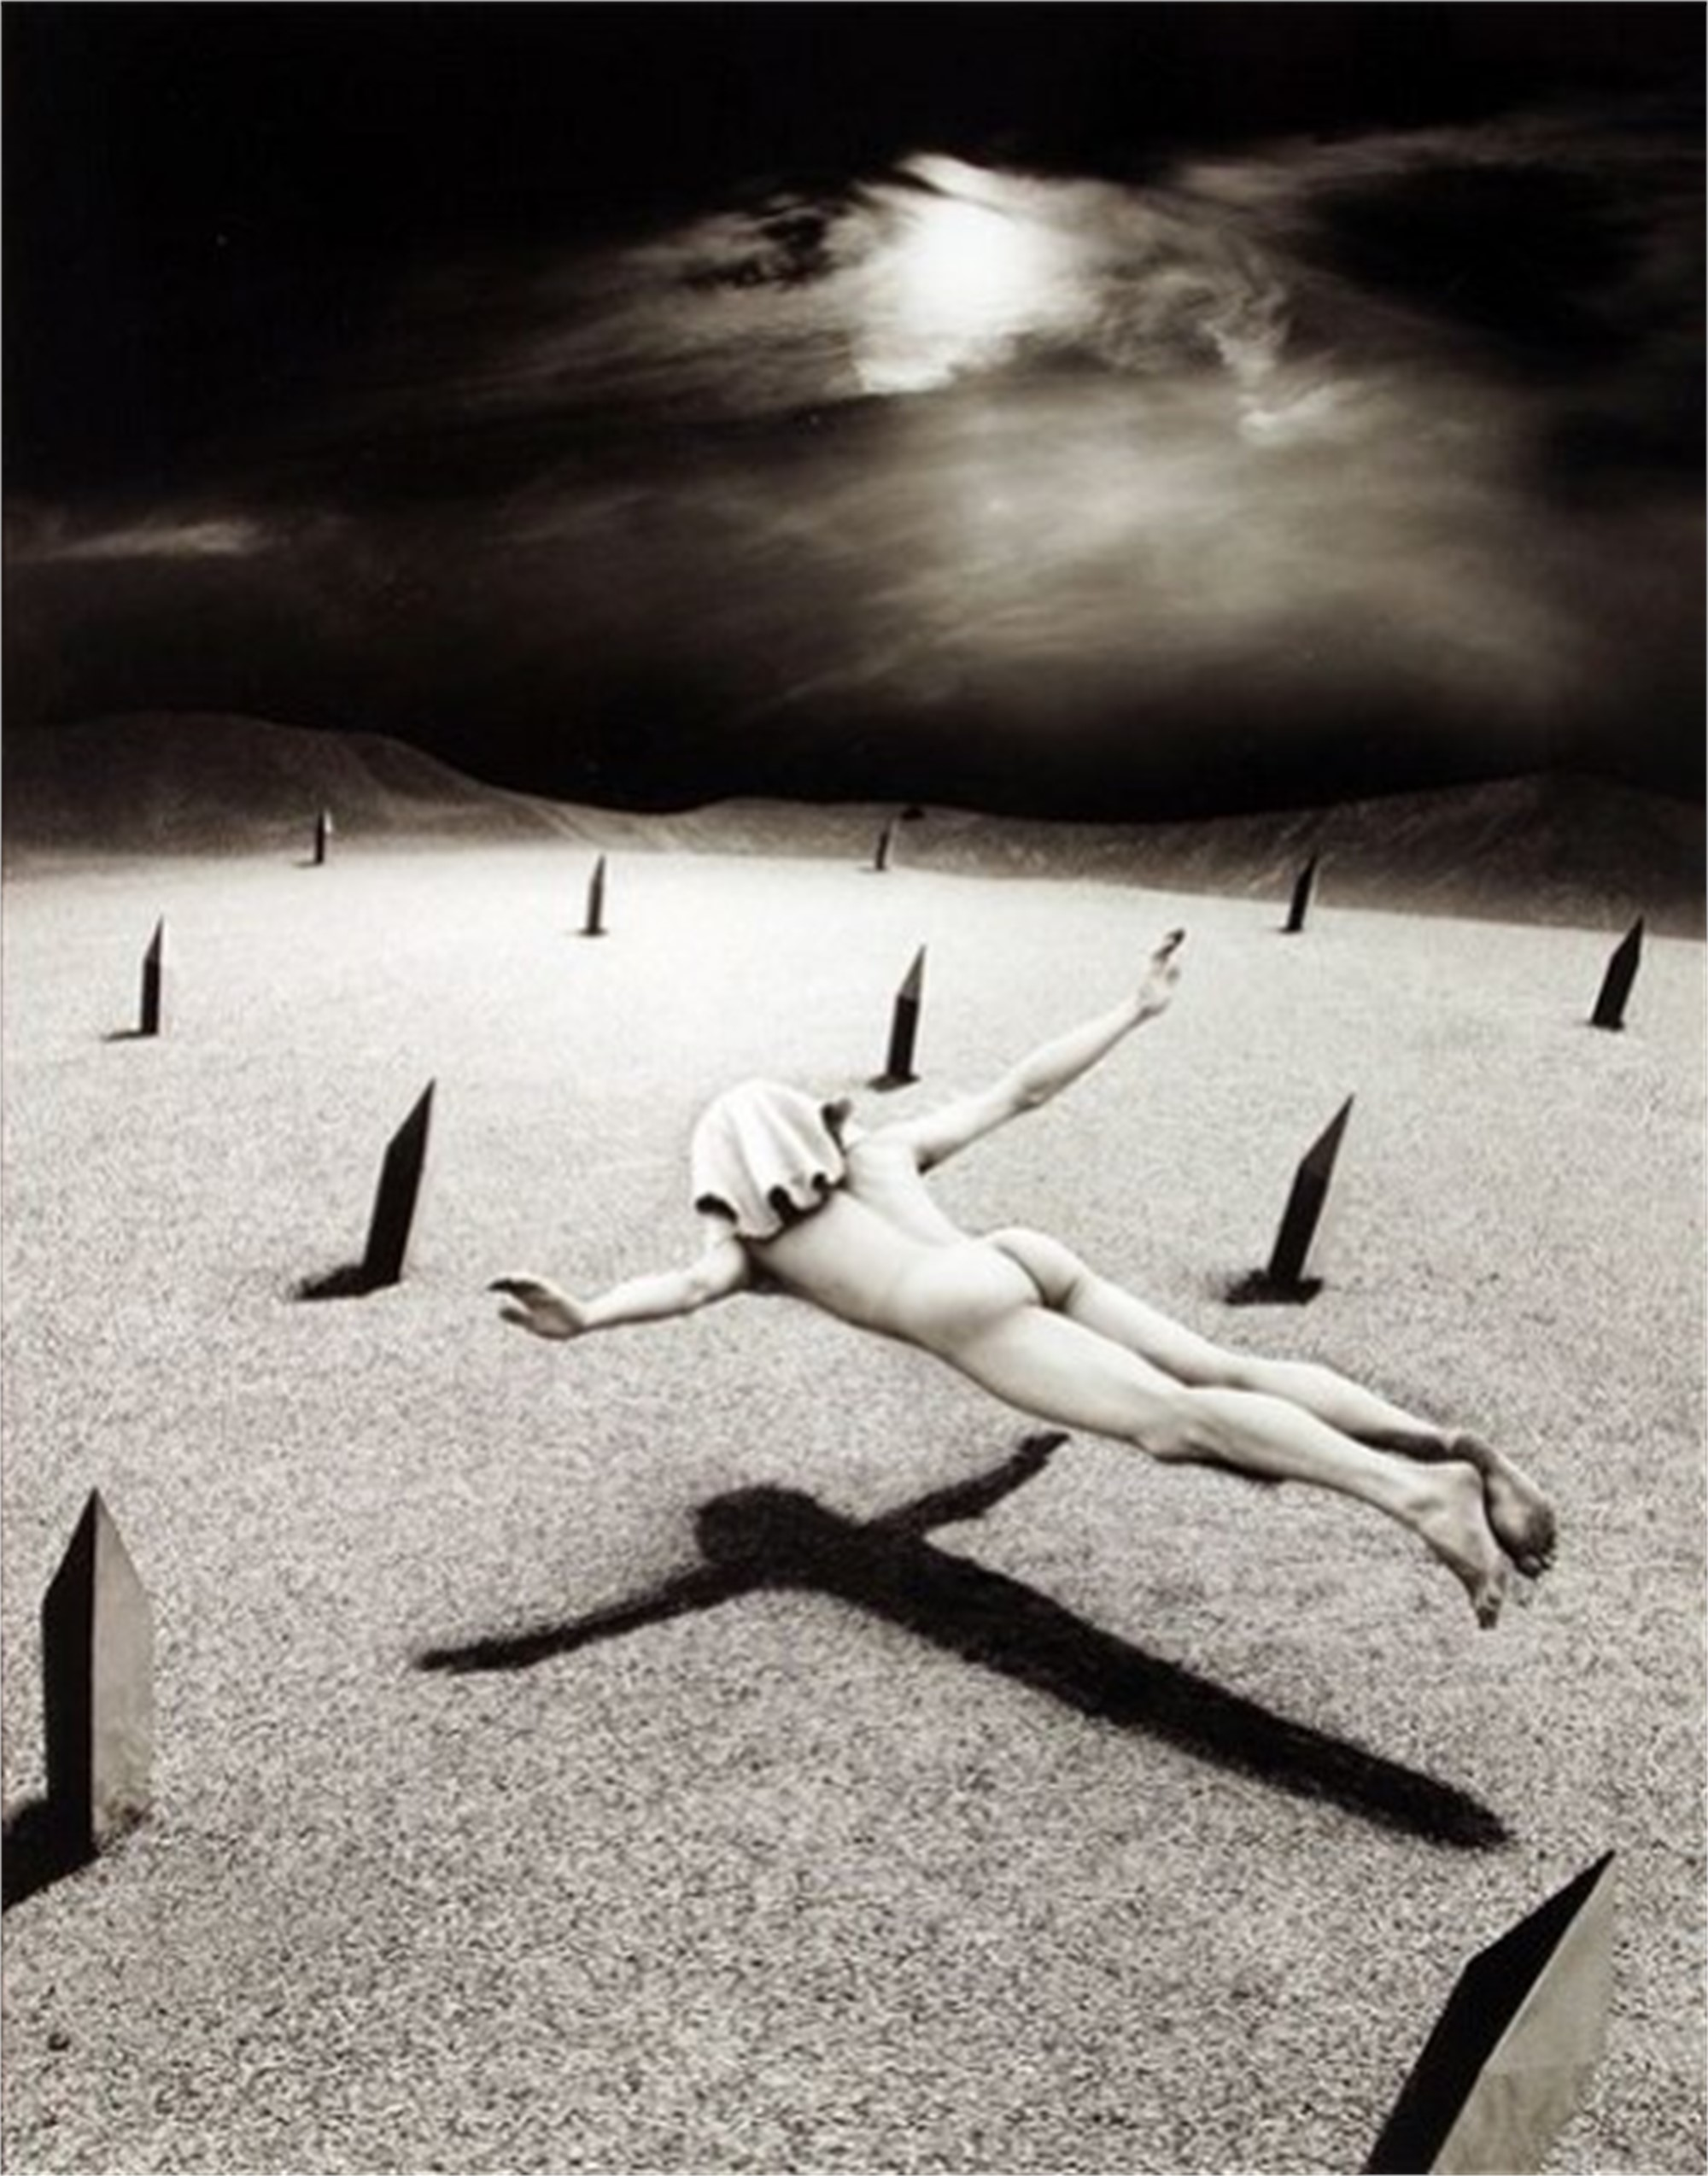 The Silent Arrow by Misha Gordin